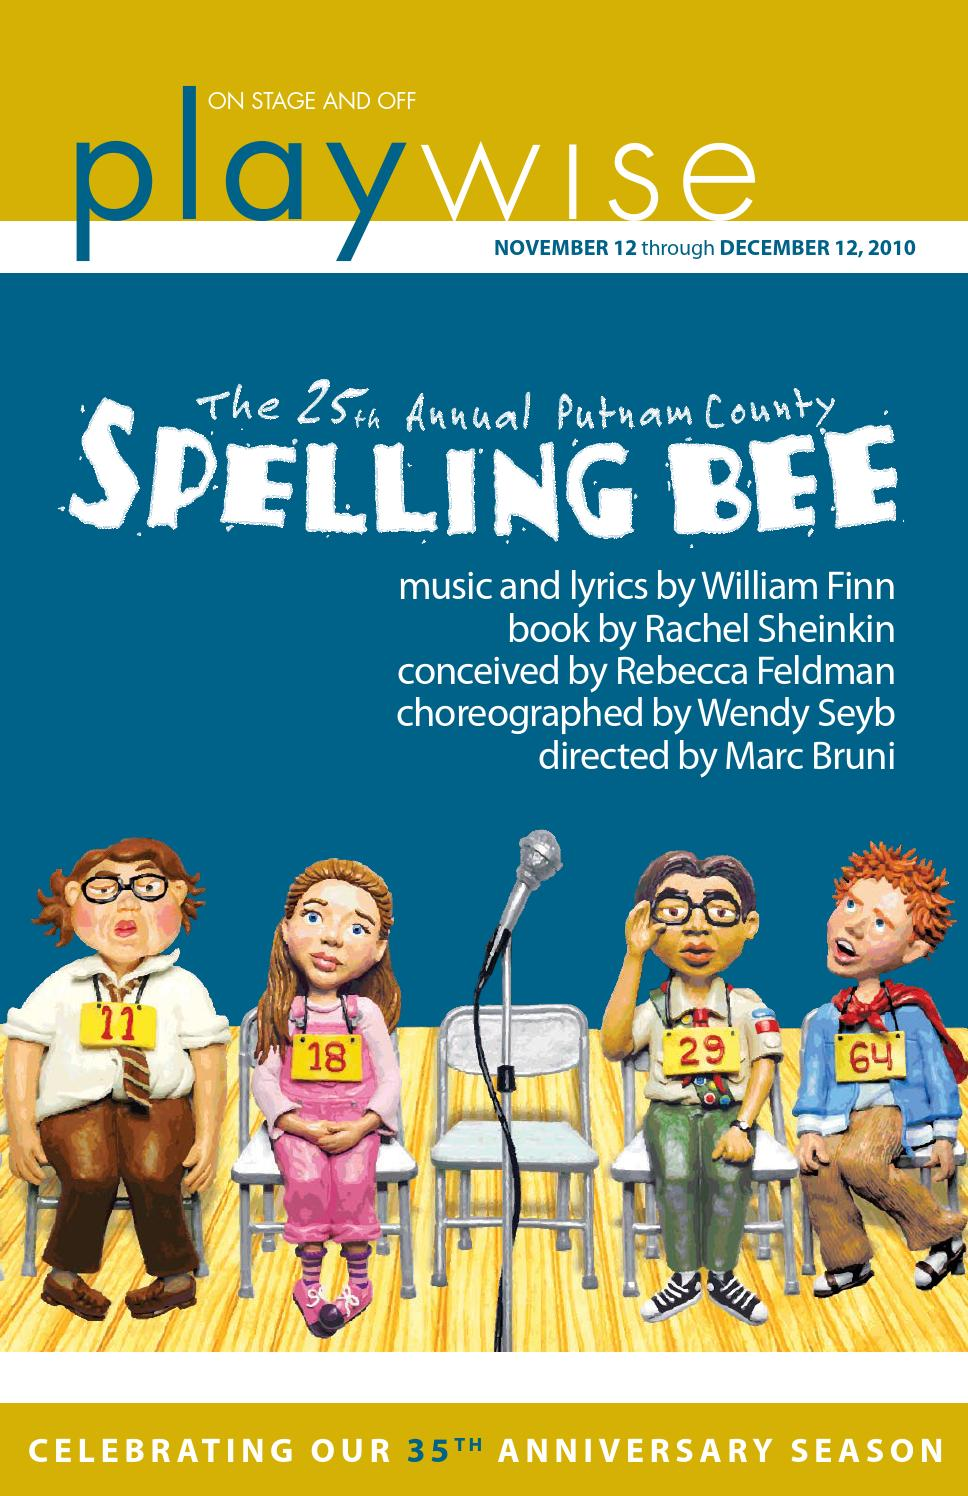 Playwise | The 25th Annual Putnam County Spelling Bee